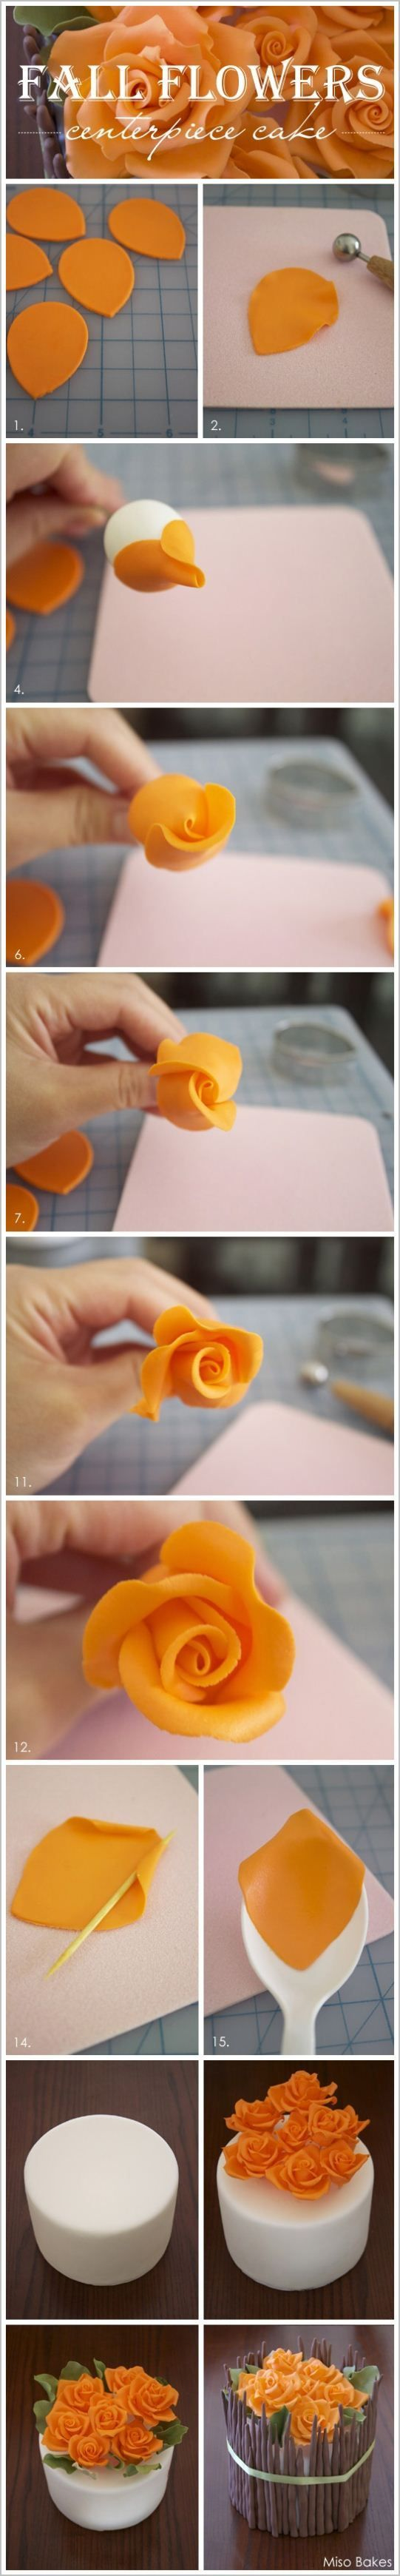 Air Dry Clay Tutorials: Easy Roses to Make with Clay #Food-Drink